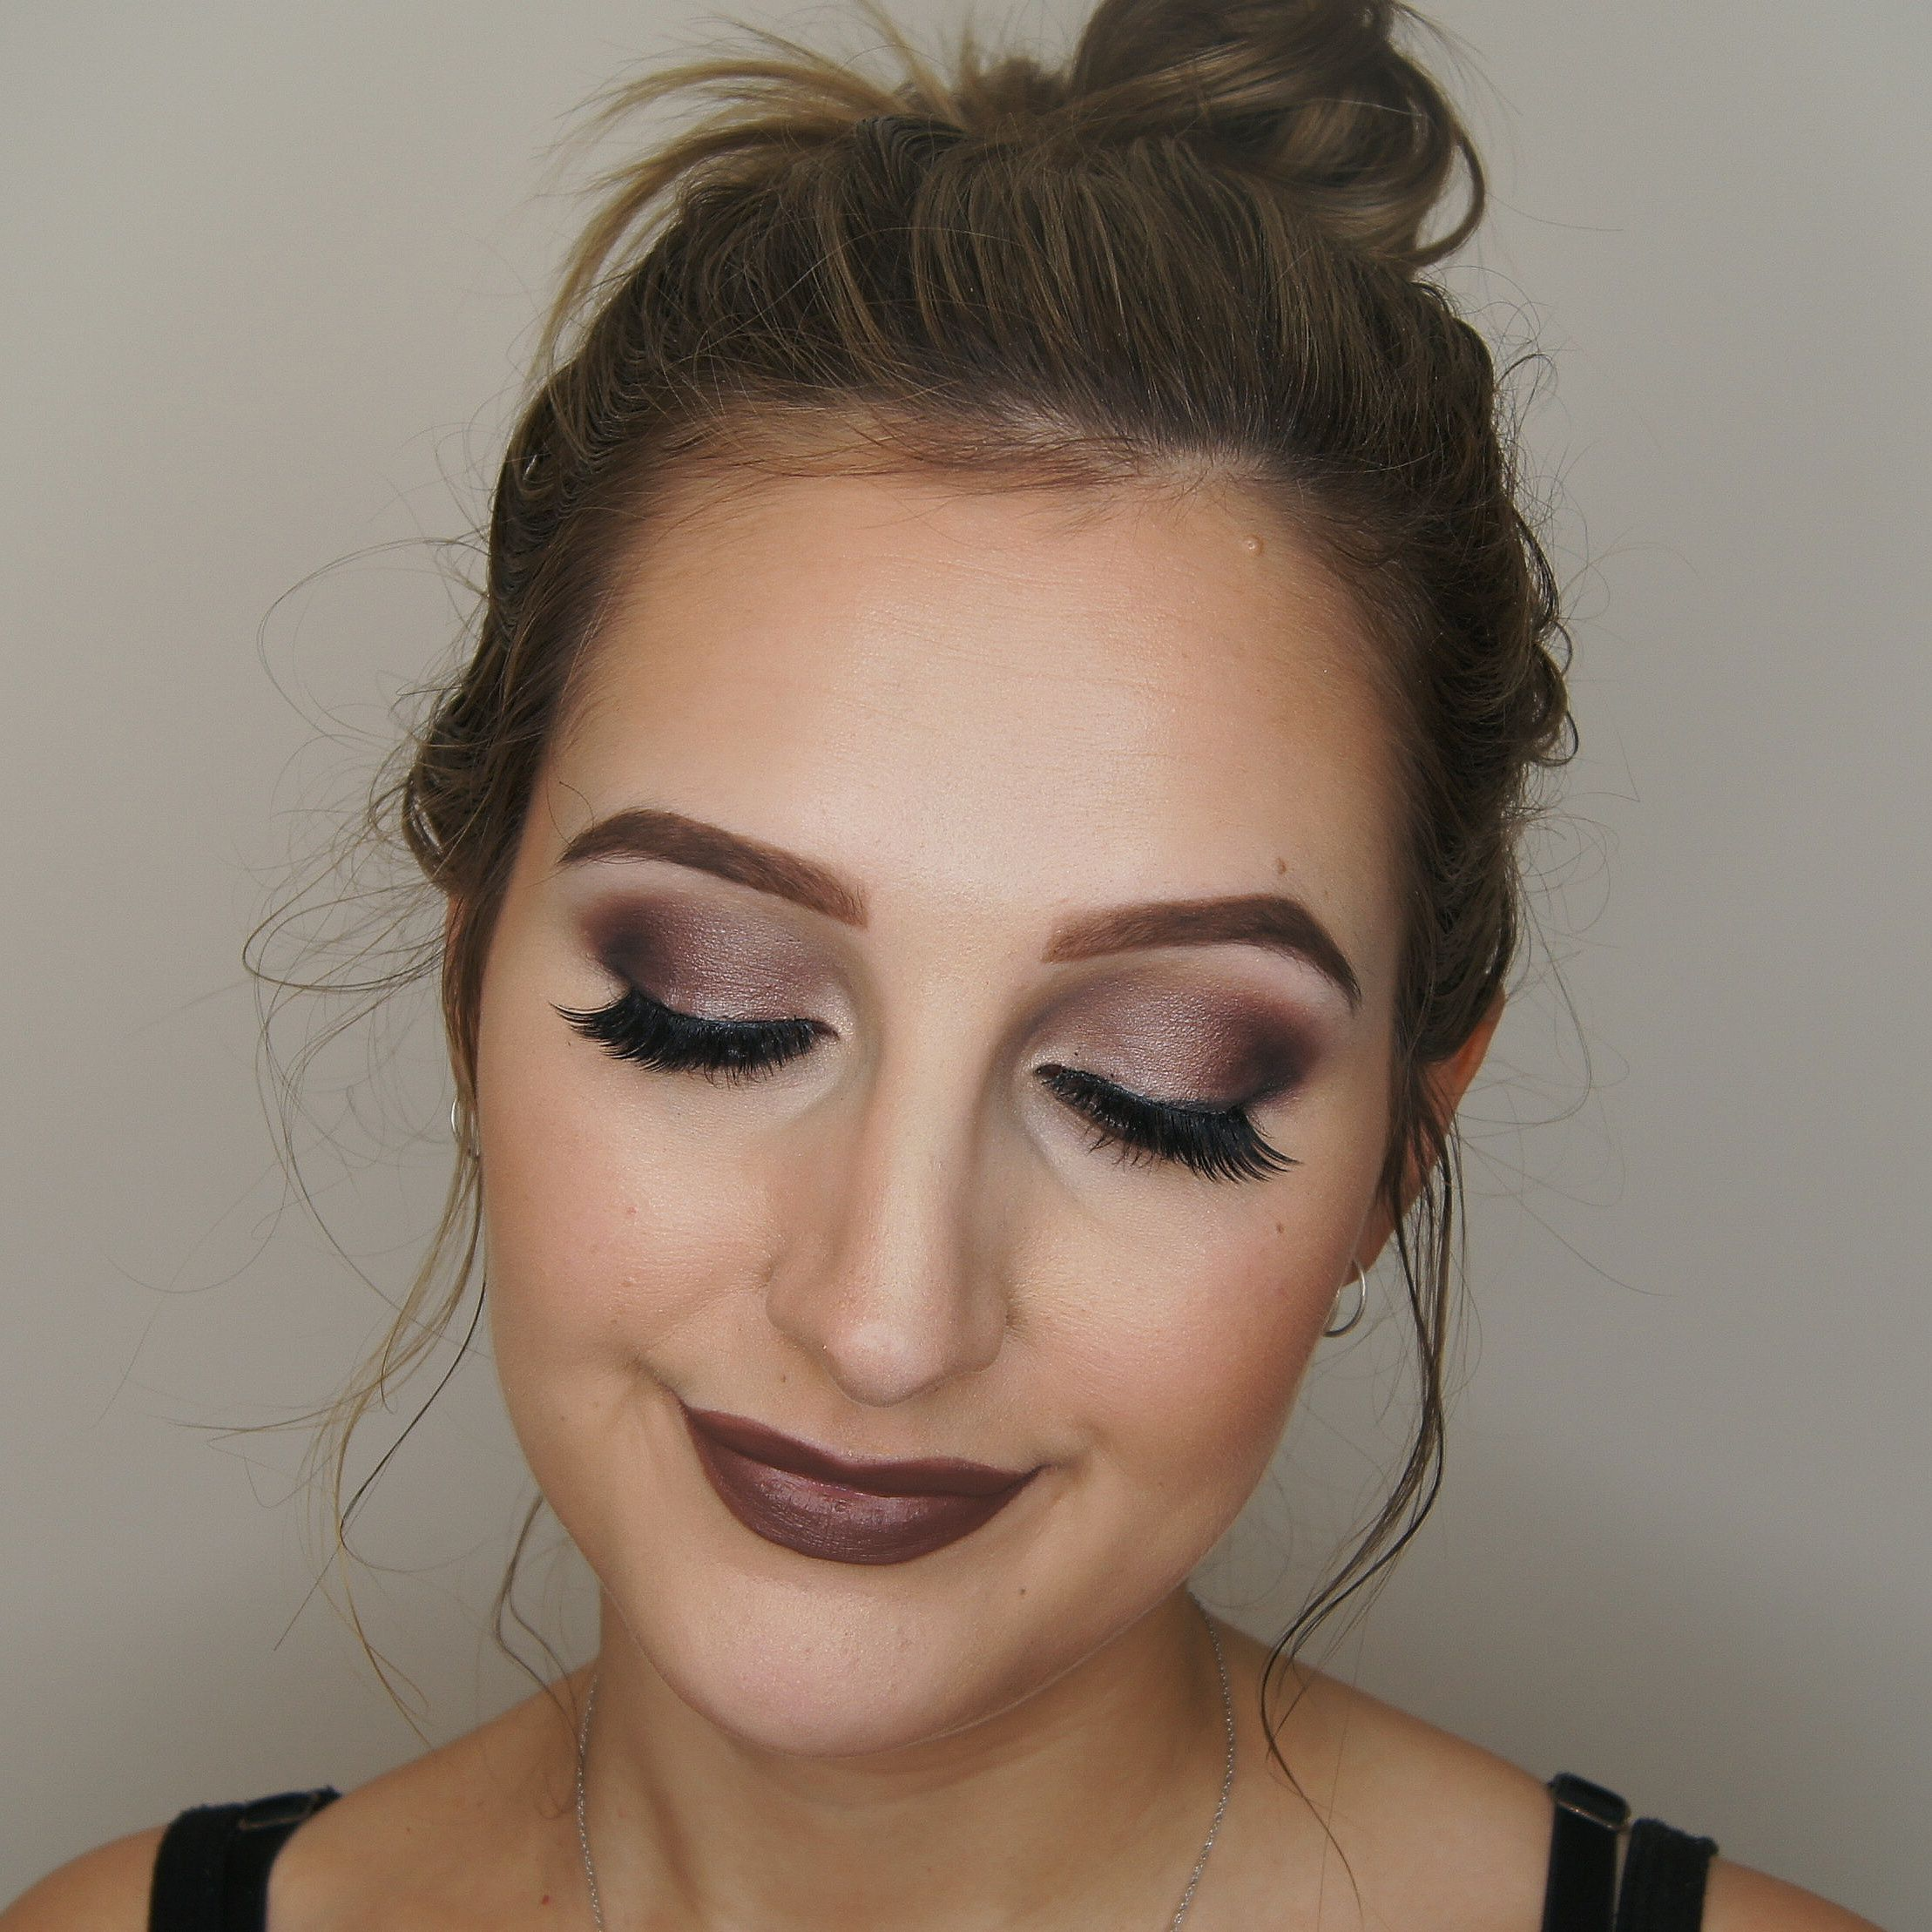 1b07dc52315 Makeup Geek Eyeshadows in Beaches and Cream and Prom Night. Look by: Kayla  Matisi